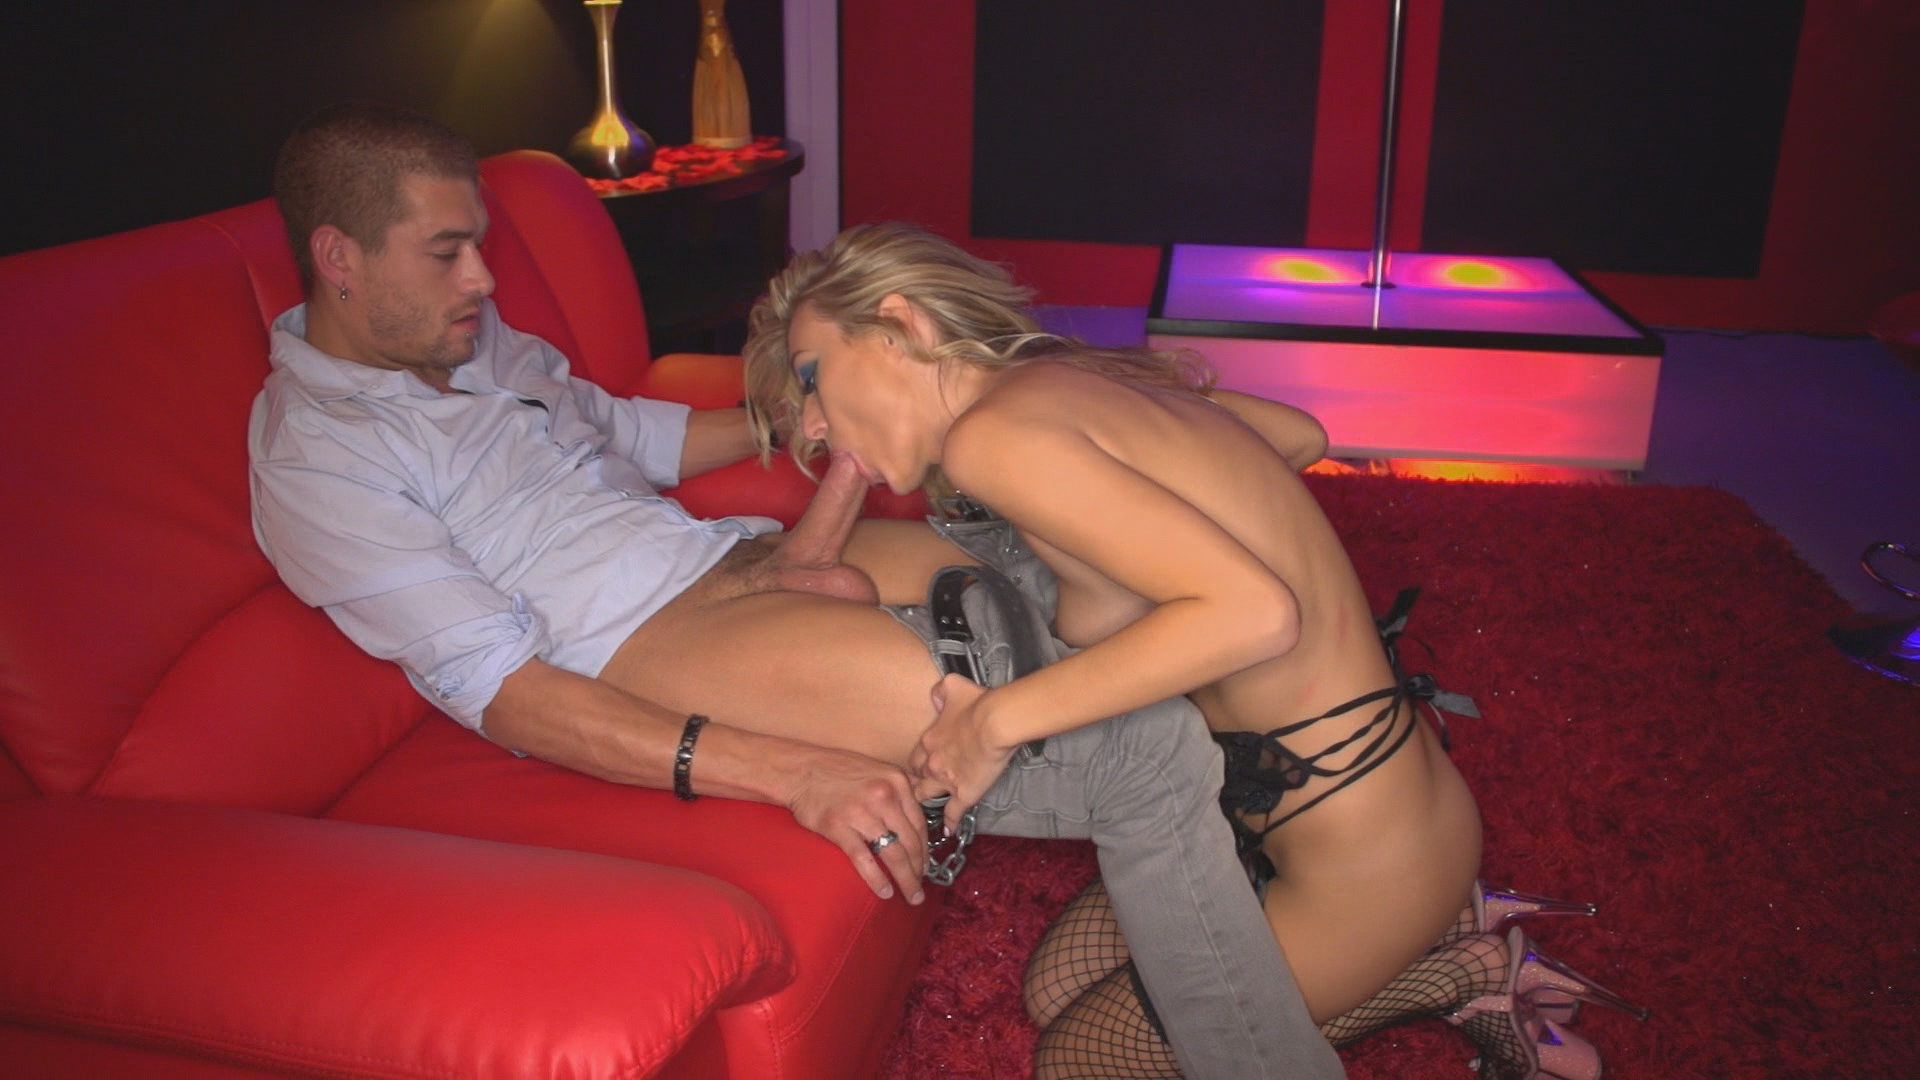 VIP Stripper Sex 2 xvideos